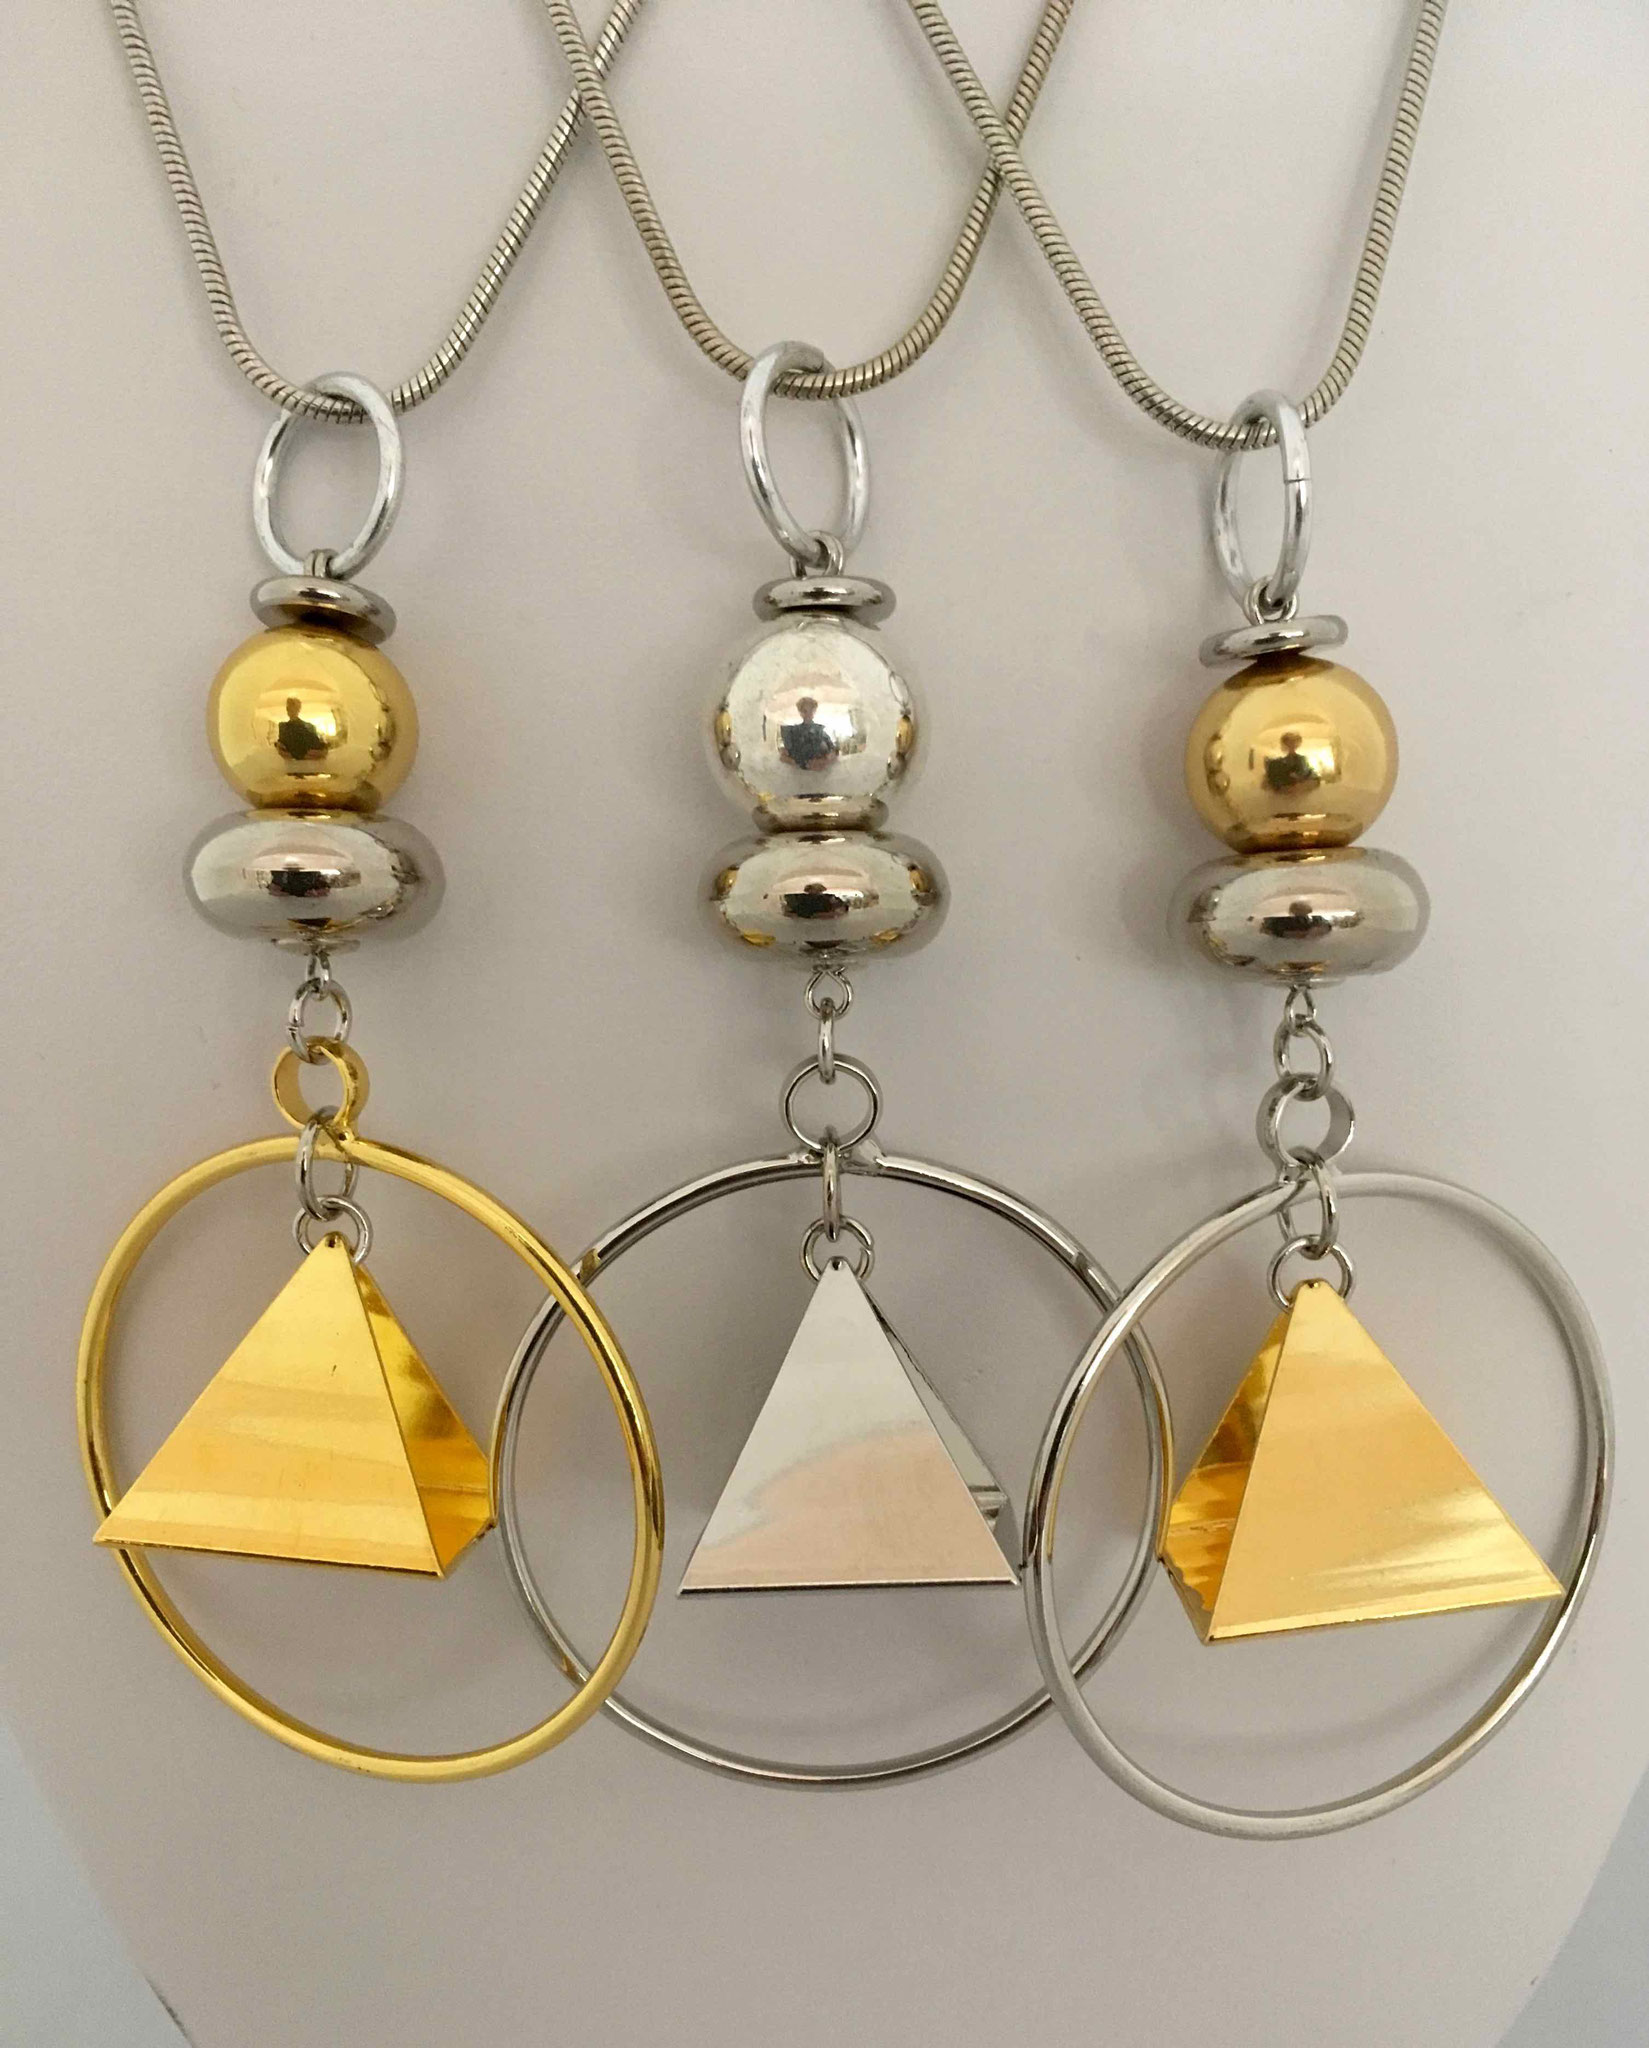 Chagoë, Colliers 2 en 1  PYRAMIDALE , Collection DORE & METAL  2017